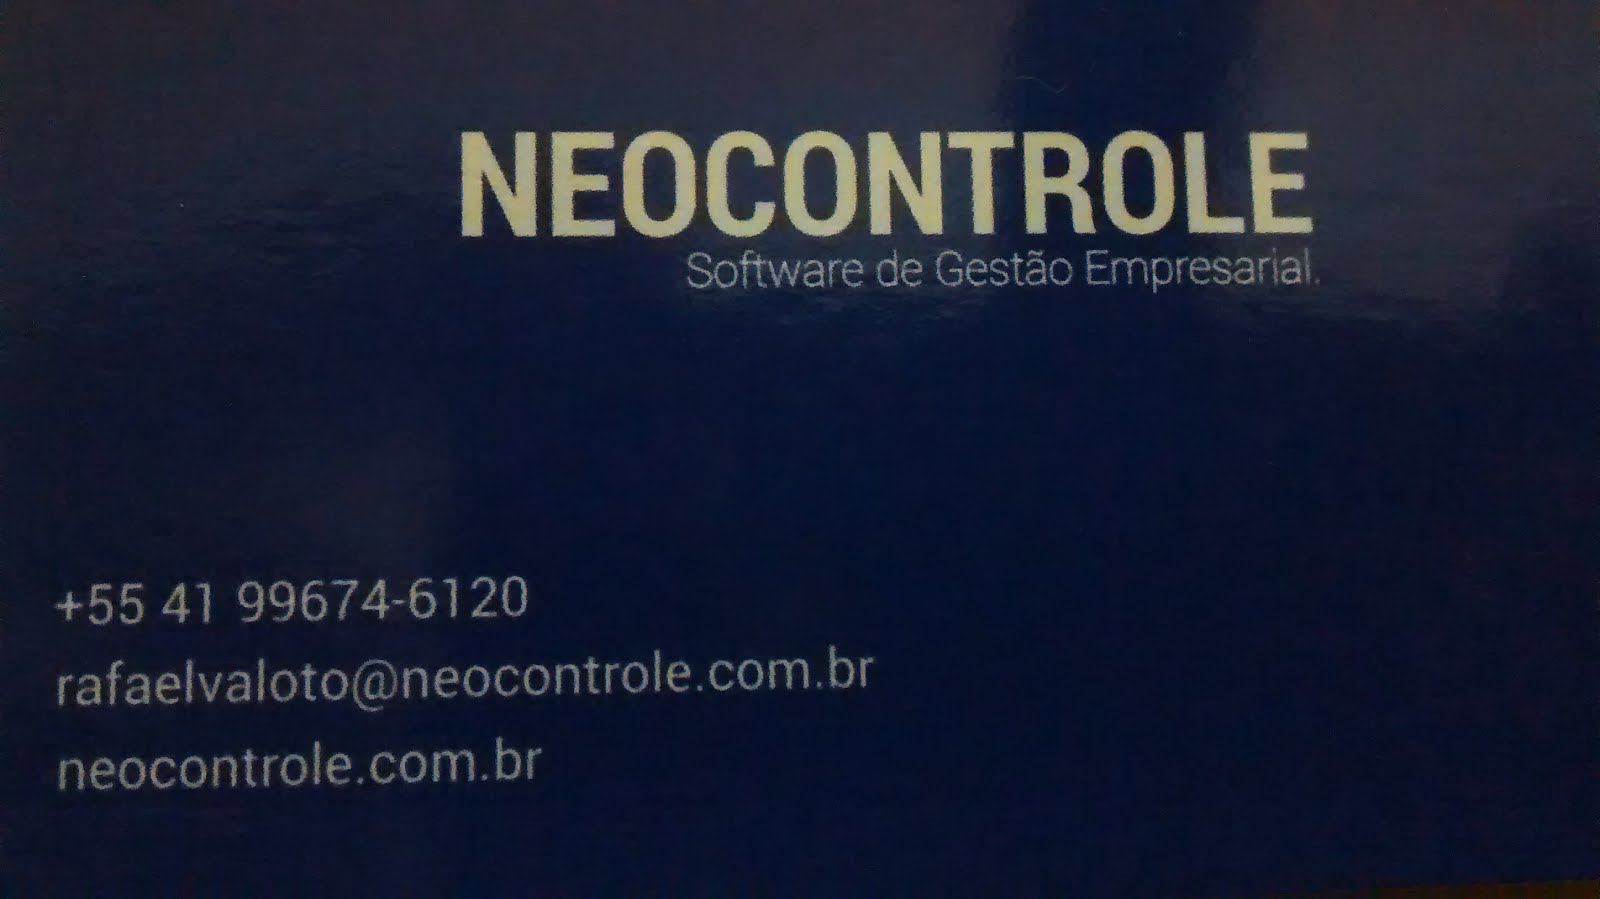 neocontrole